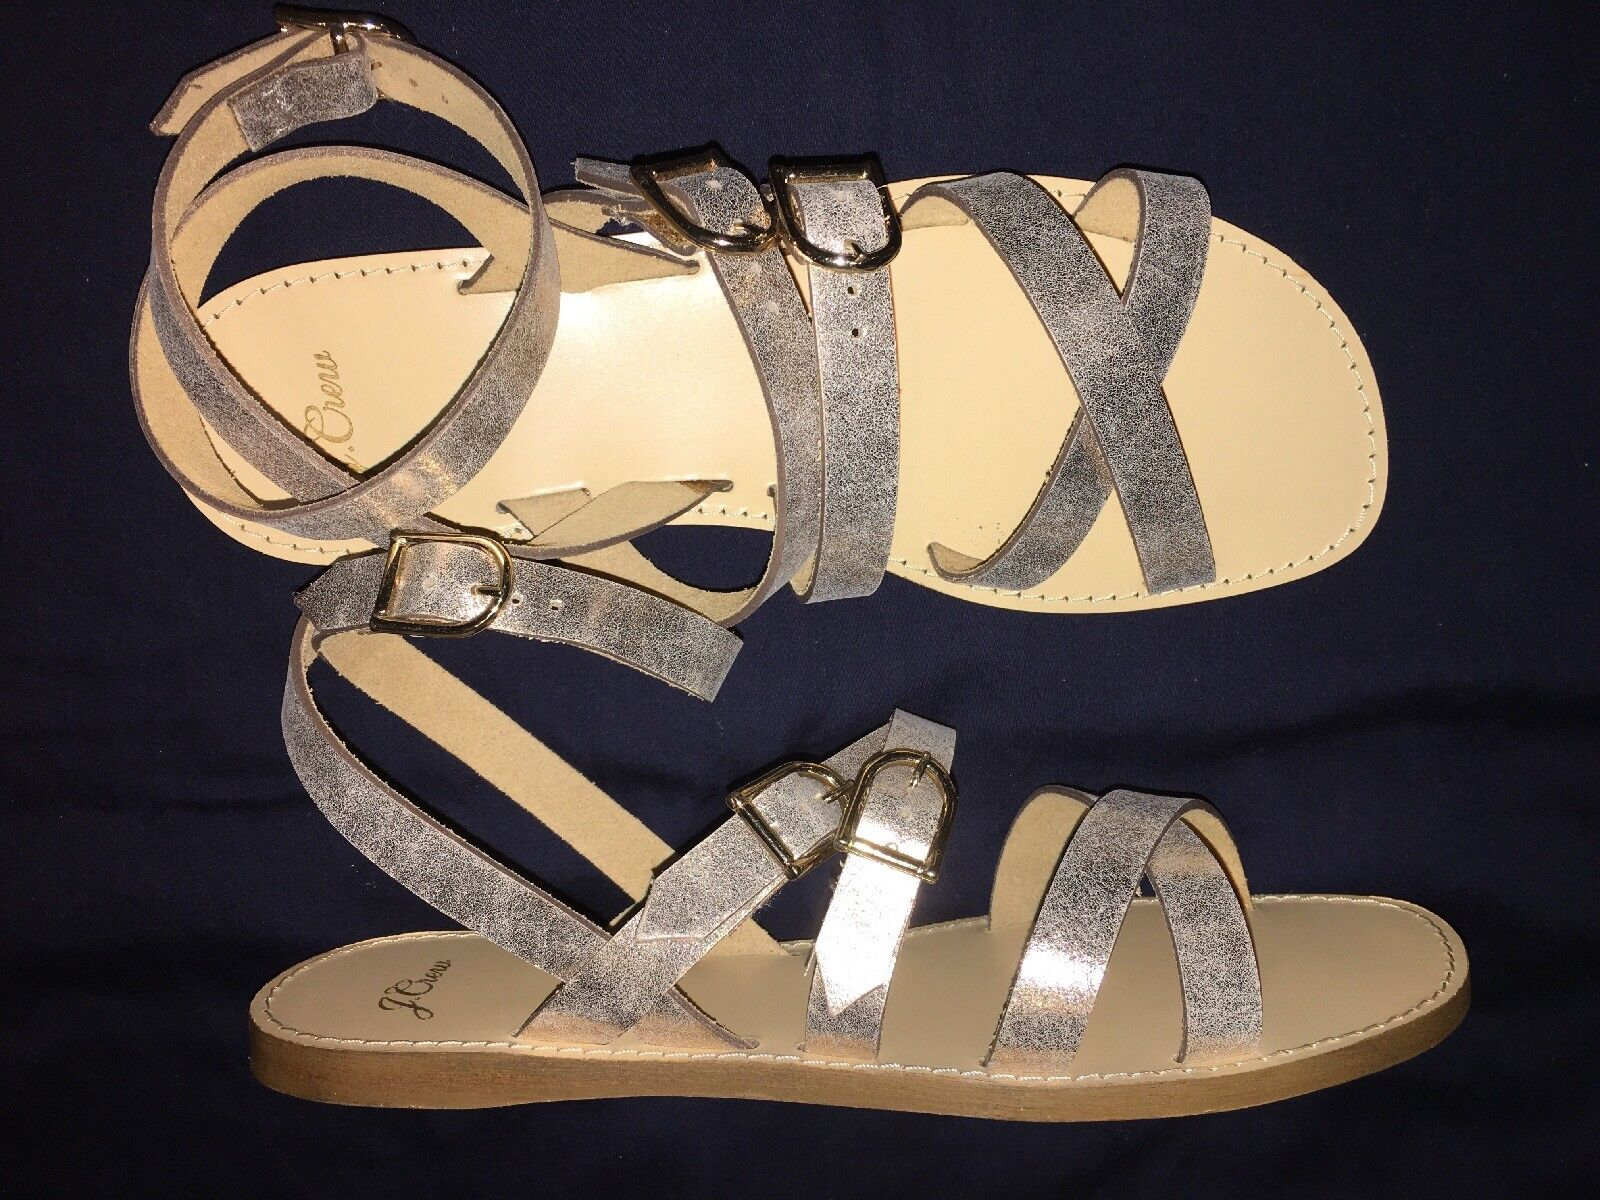 J Crew Sandals 10.5 Aria Sandal j8201 Pale gold  128 NEW Metallic Leather